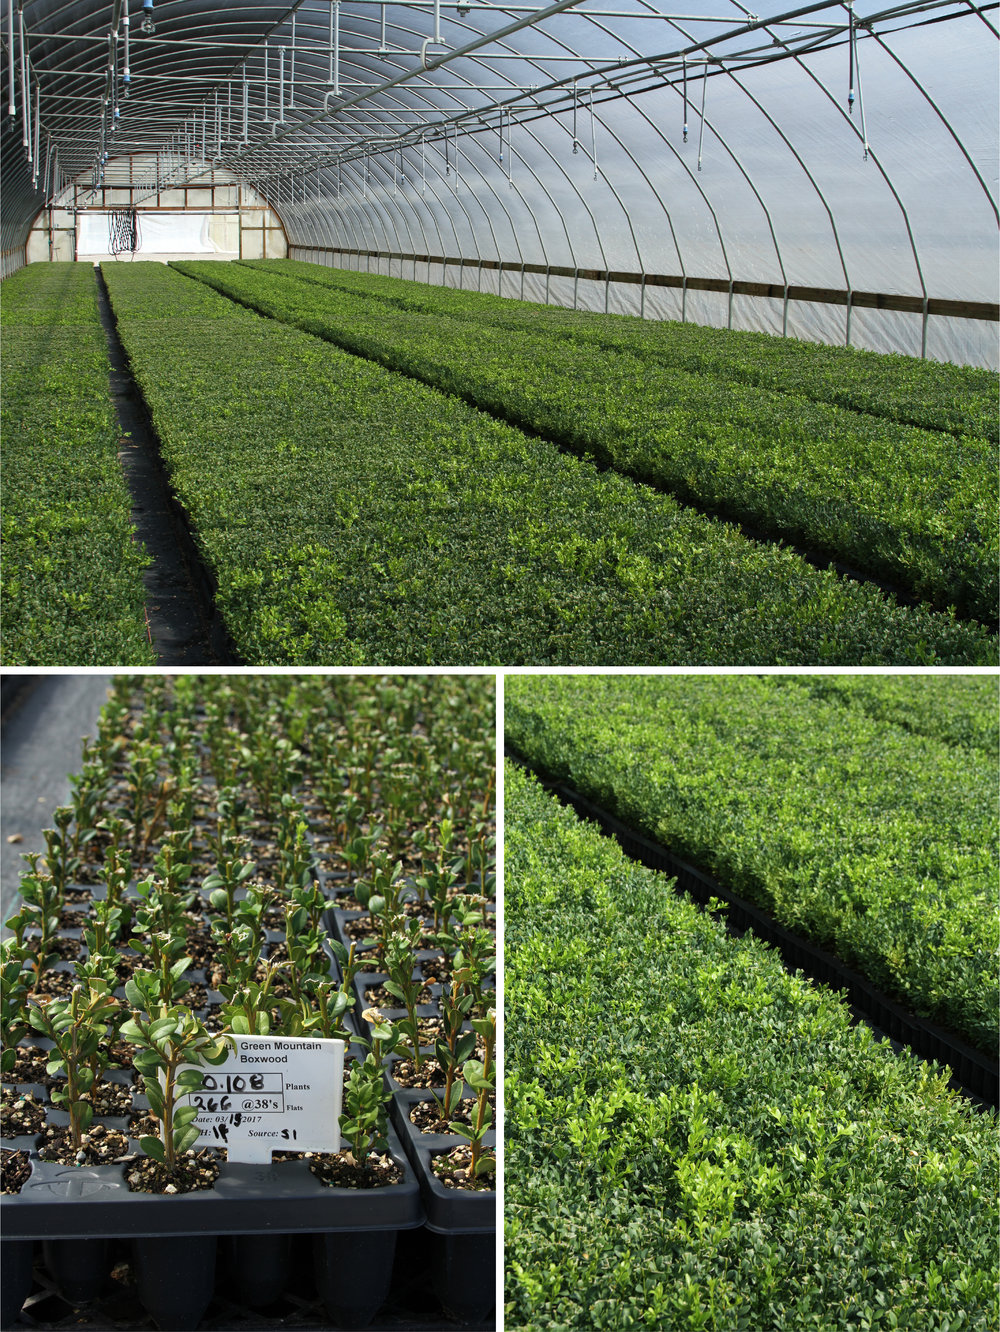 Boxwood as far as the eye can see. Boxwood cuttings (lower left) and young plants (lower right) being cared for in the Bailey greenhouses.